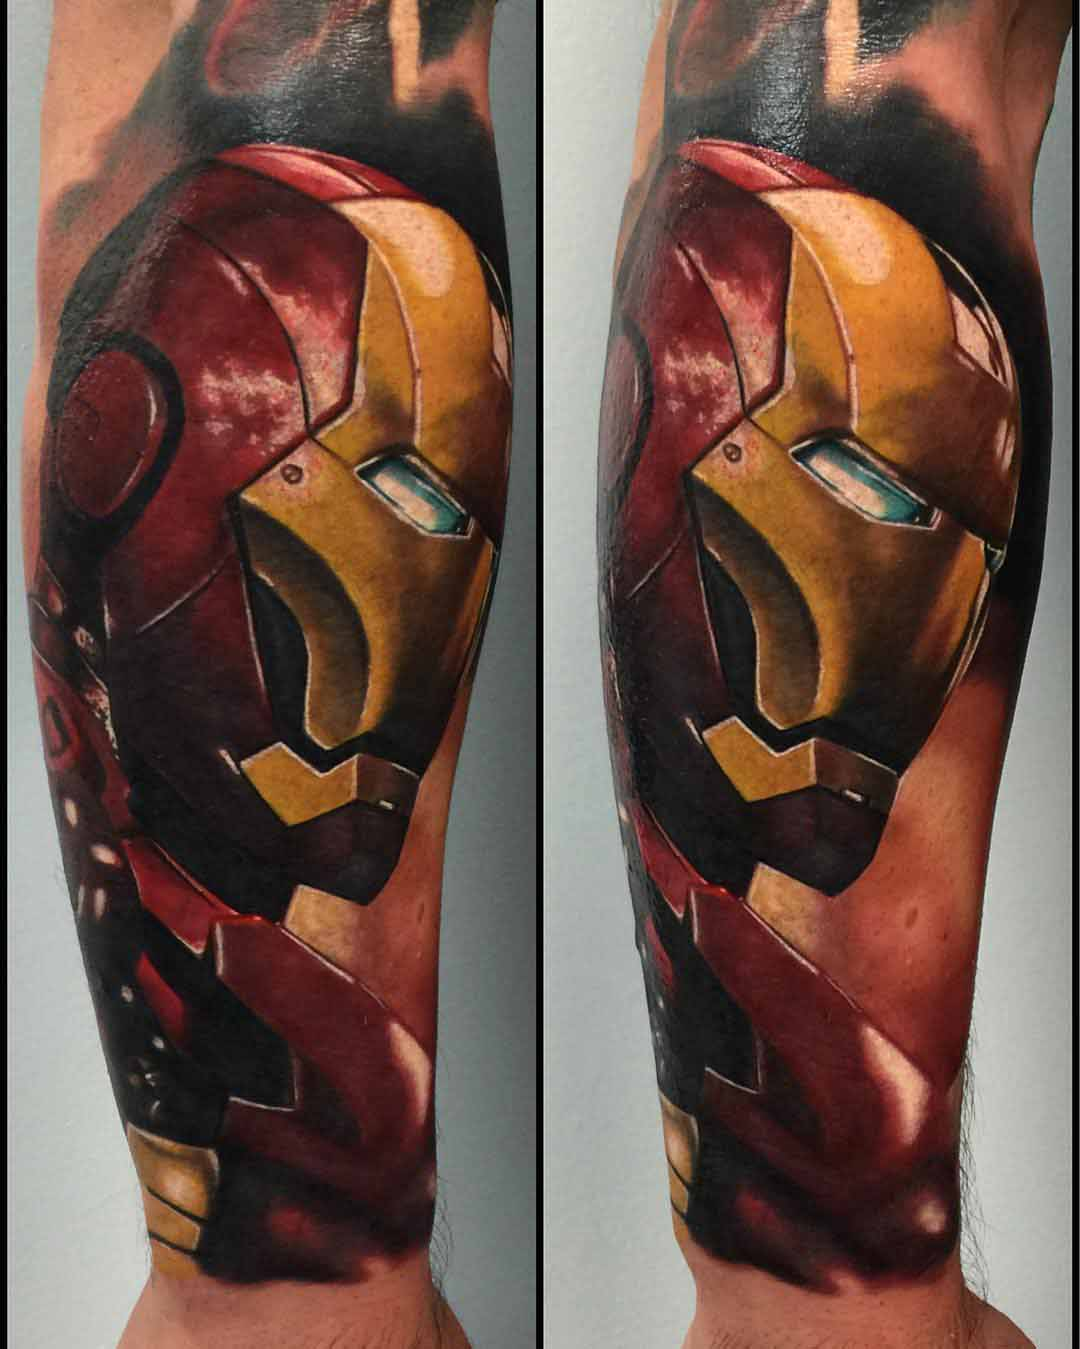 Tattoo ironman head